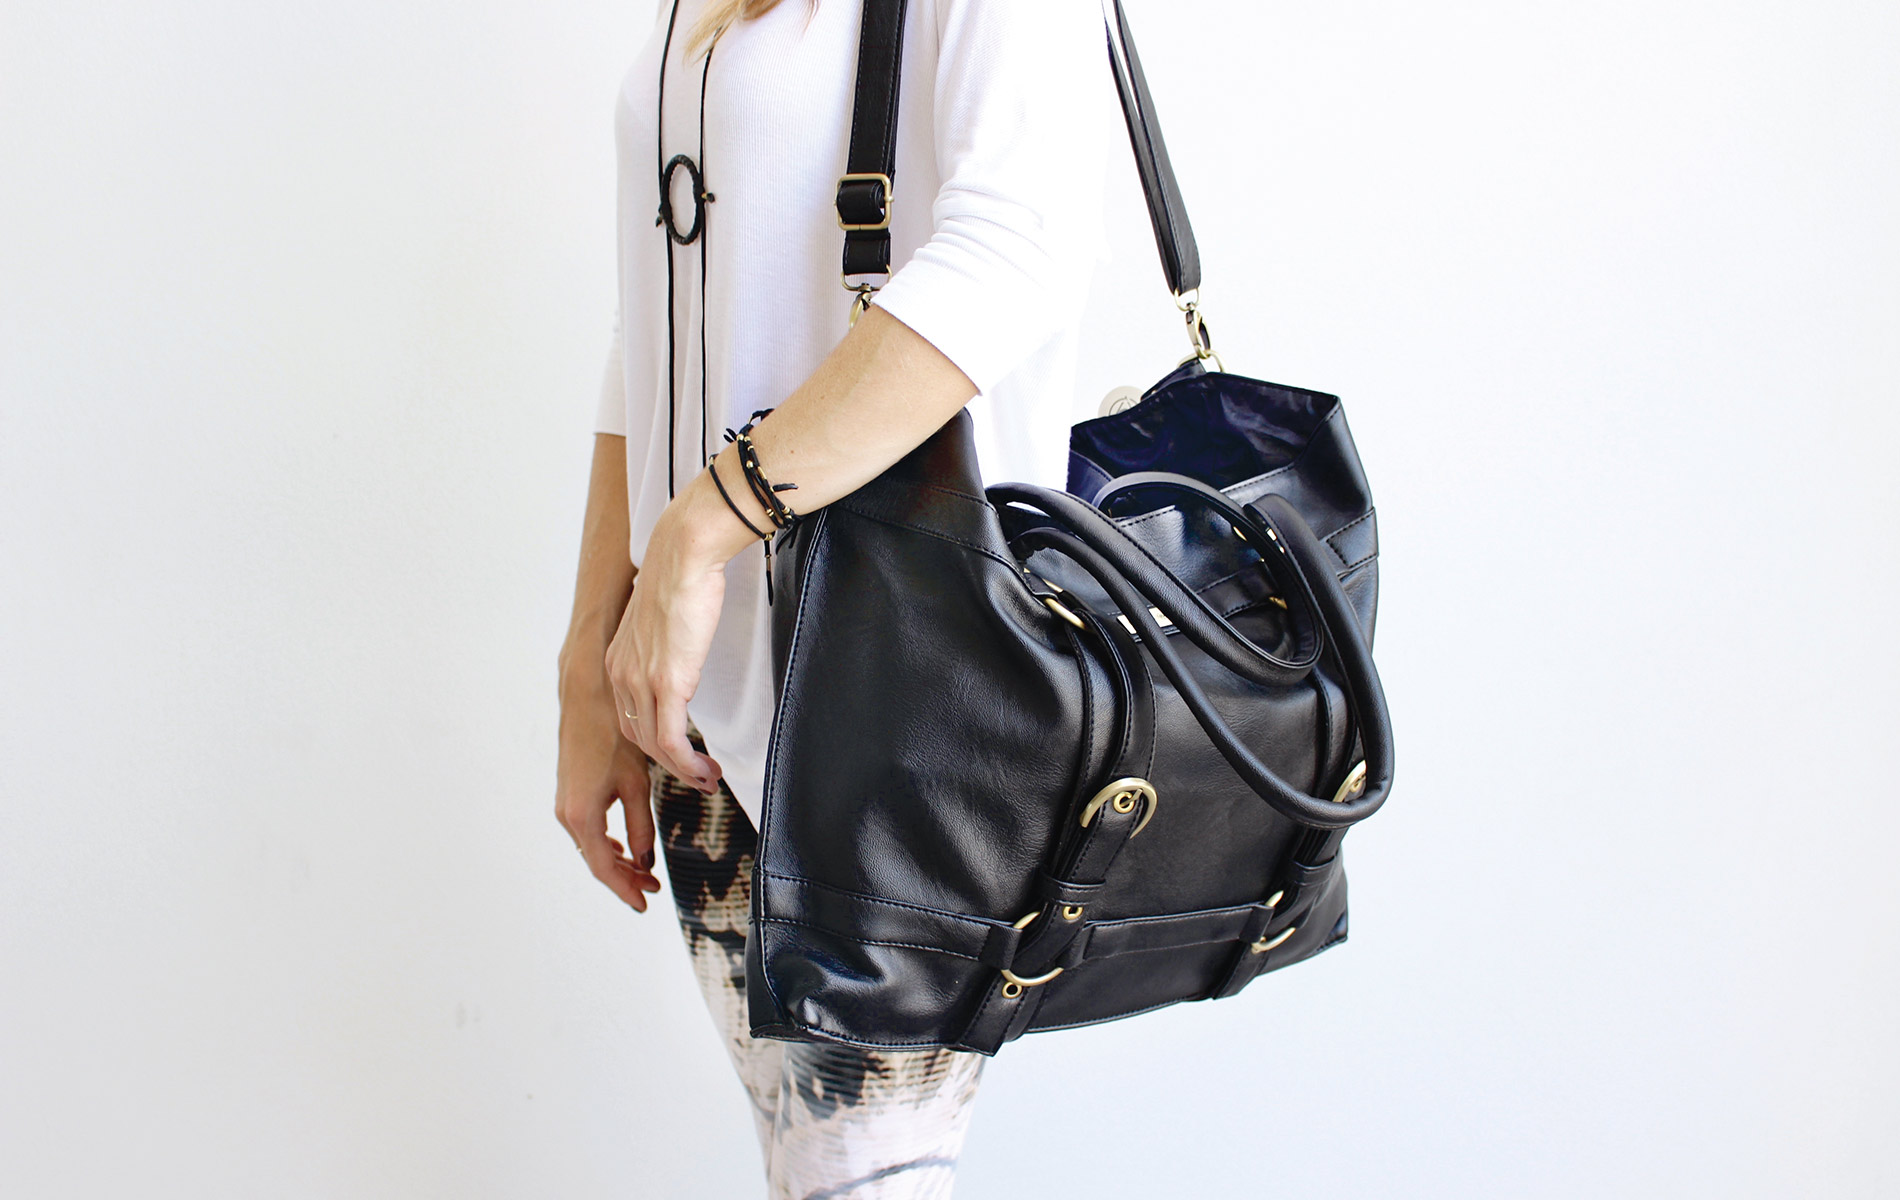 The Be Great shoulder bag by Maha Loka model with shoulder bag on white background